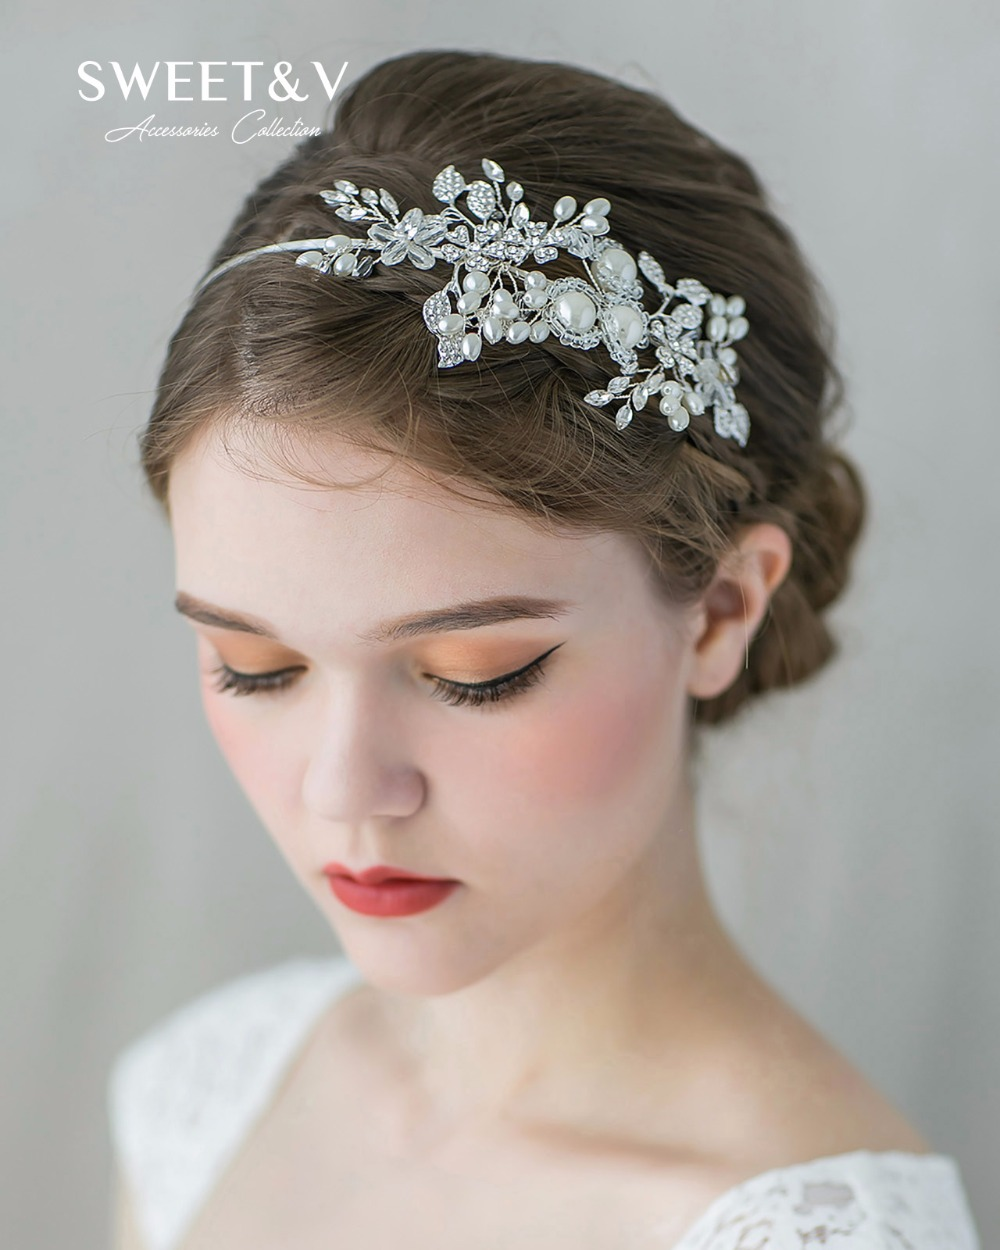 Wedding Flower Headpieces: Handmade Pearl Headband Tiara Rhinestone Bridal Hair